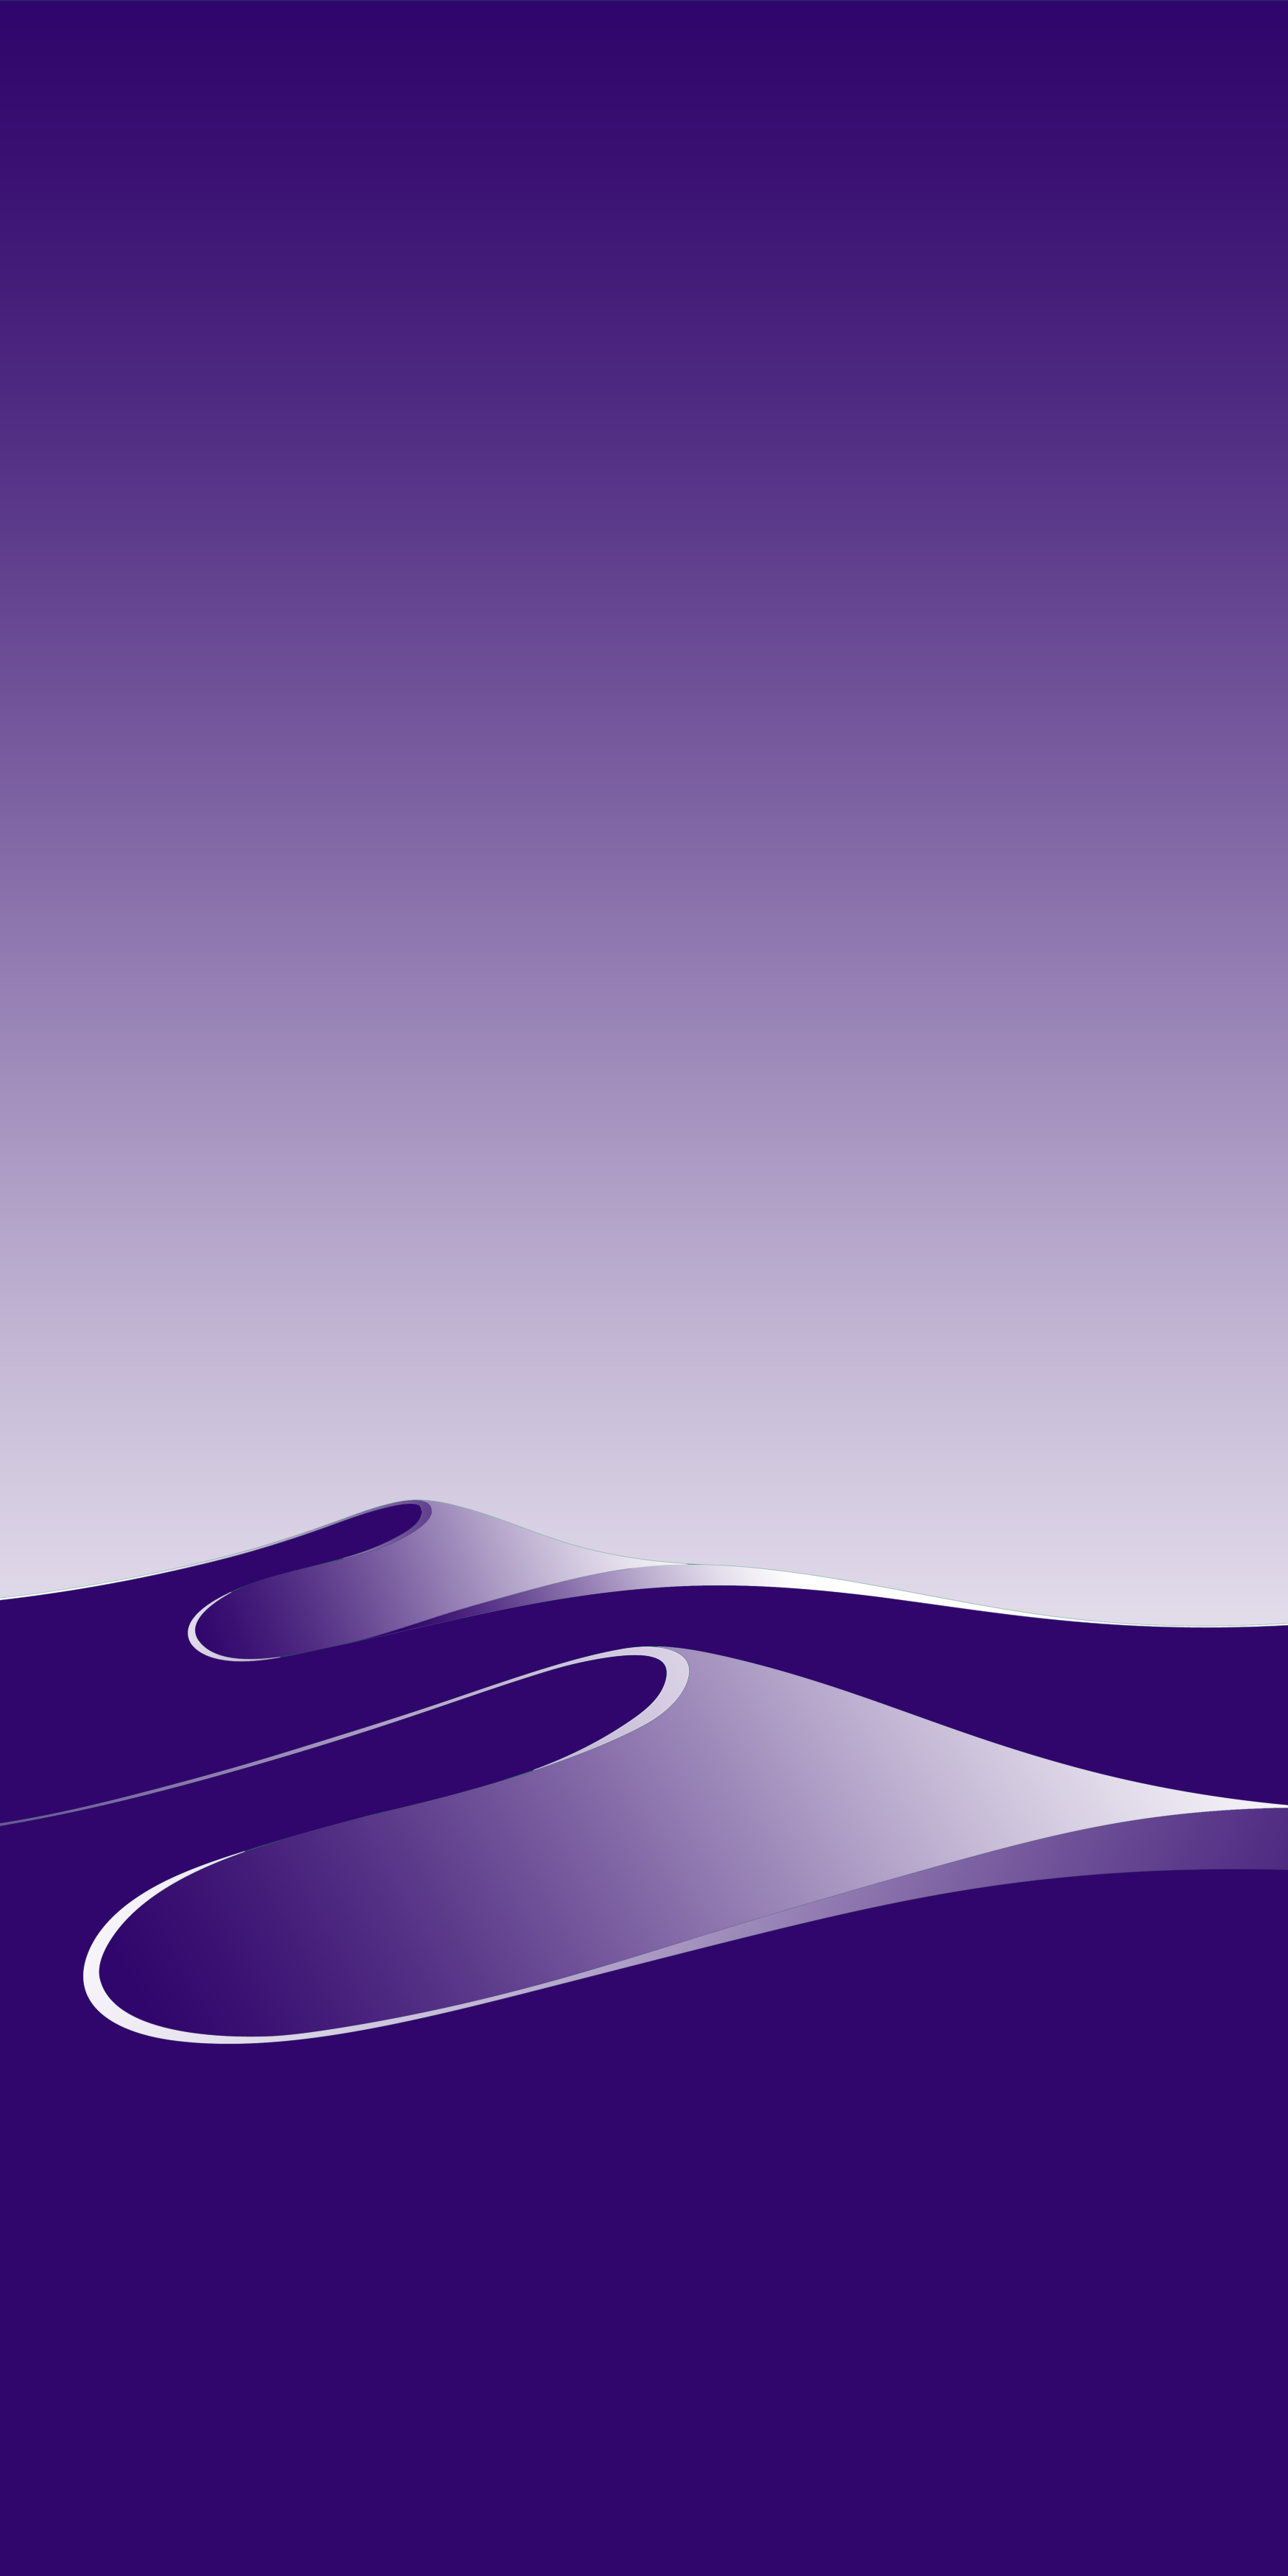 Samsung Galaxy S20 Ultra Wallpaper For Punch Hole In 2020 Purple Galaxy Wallpaper Samsung Galaxy Wallpaper Abstract Iphone Wallpaper